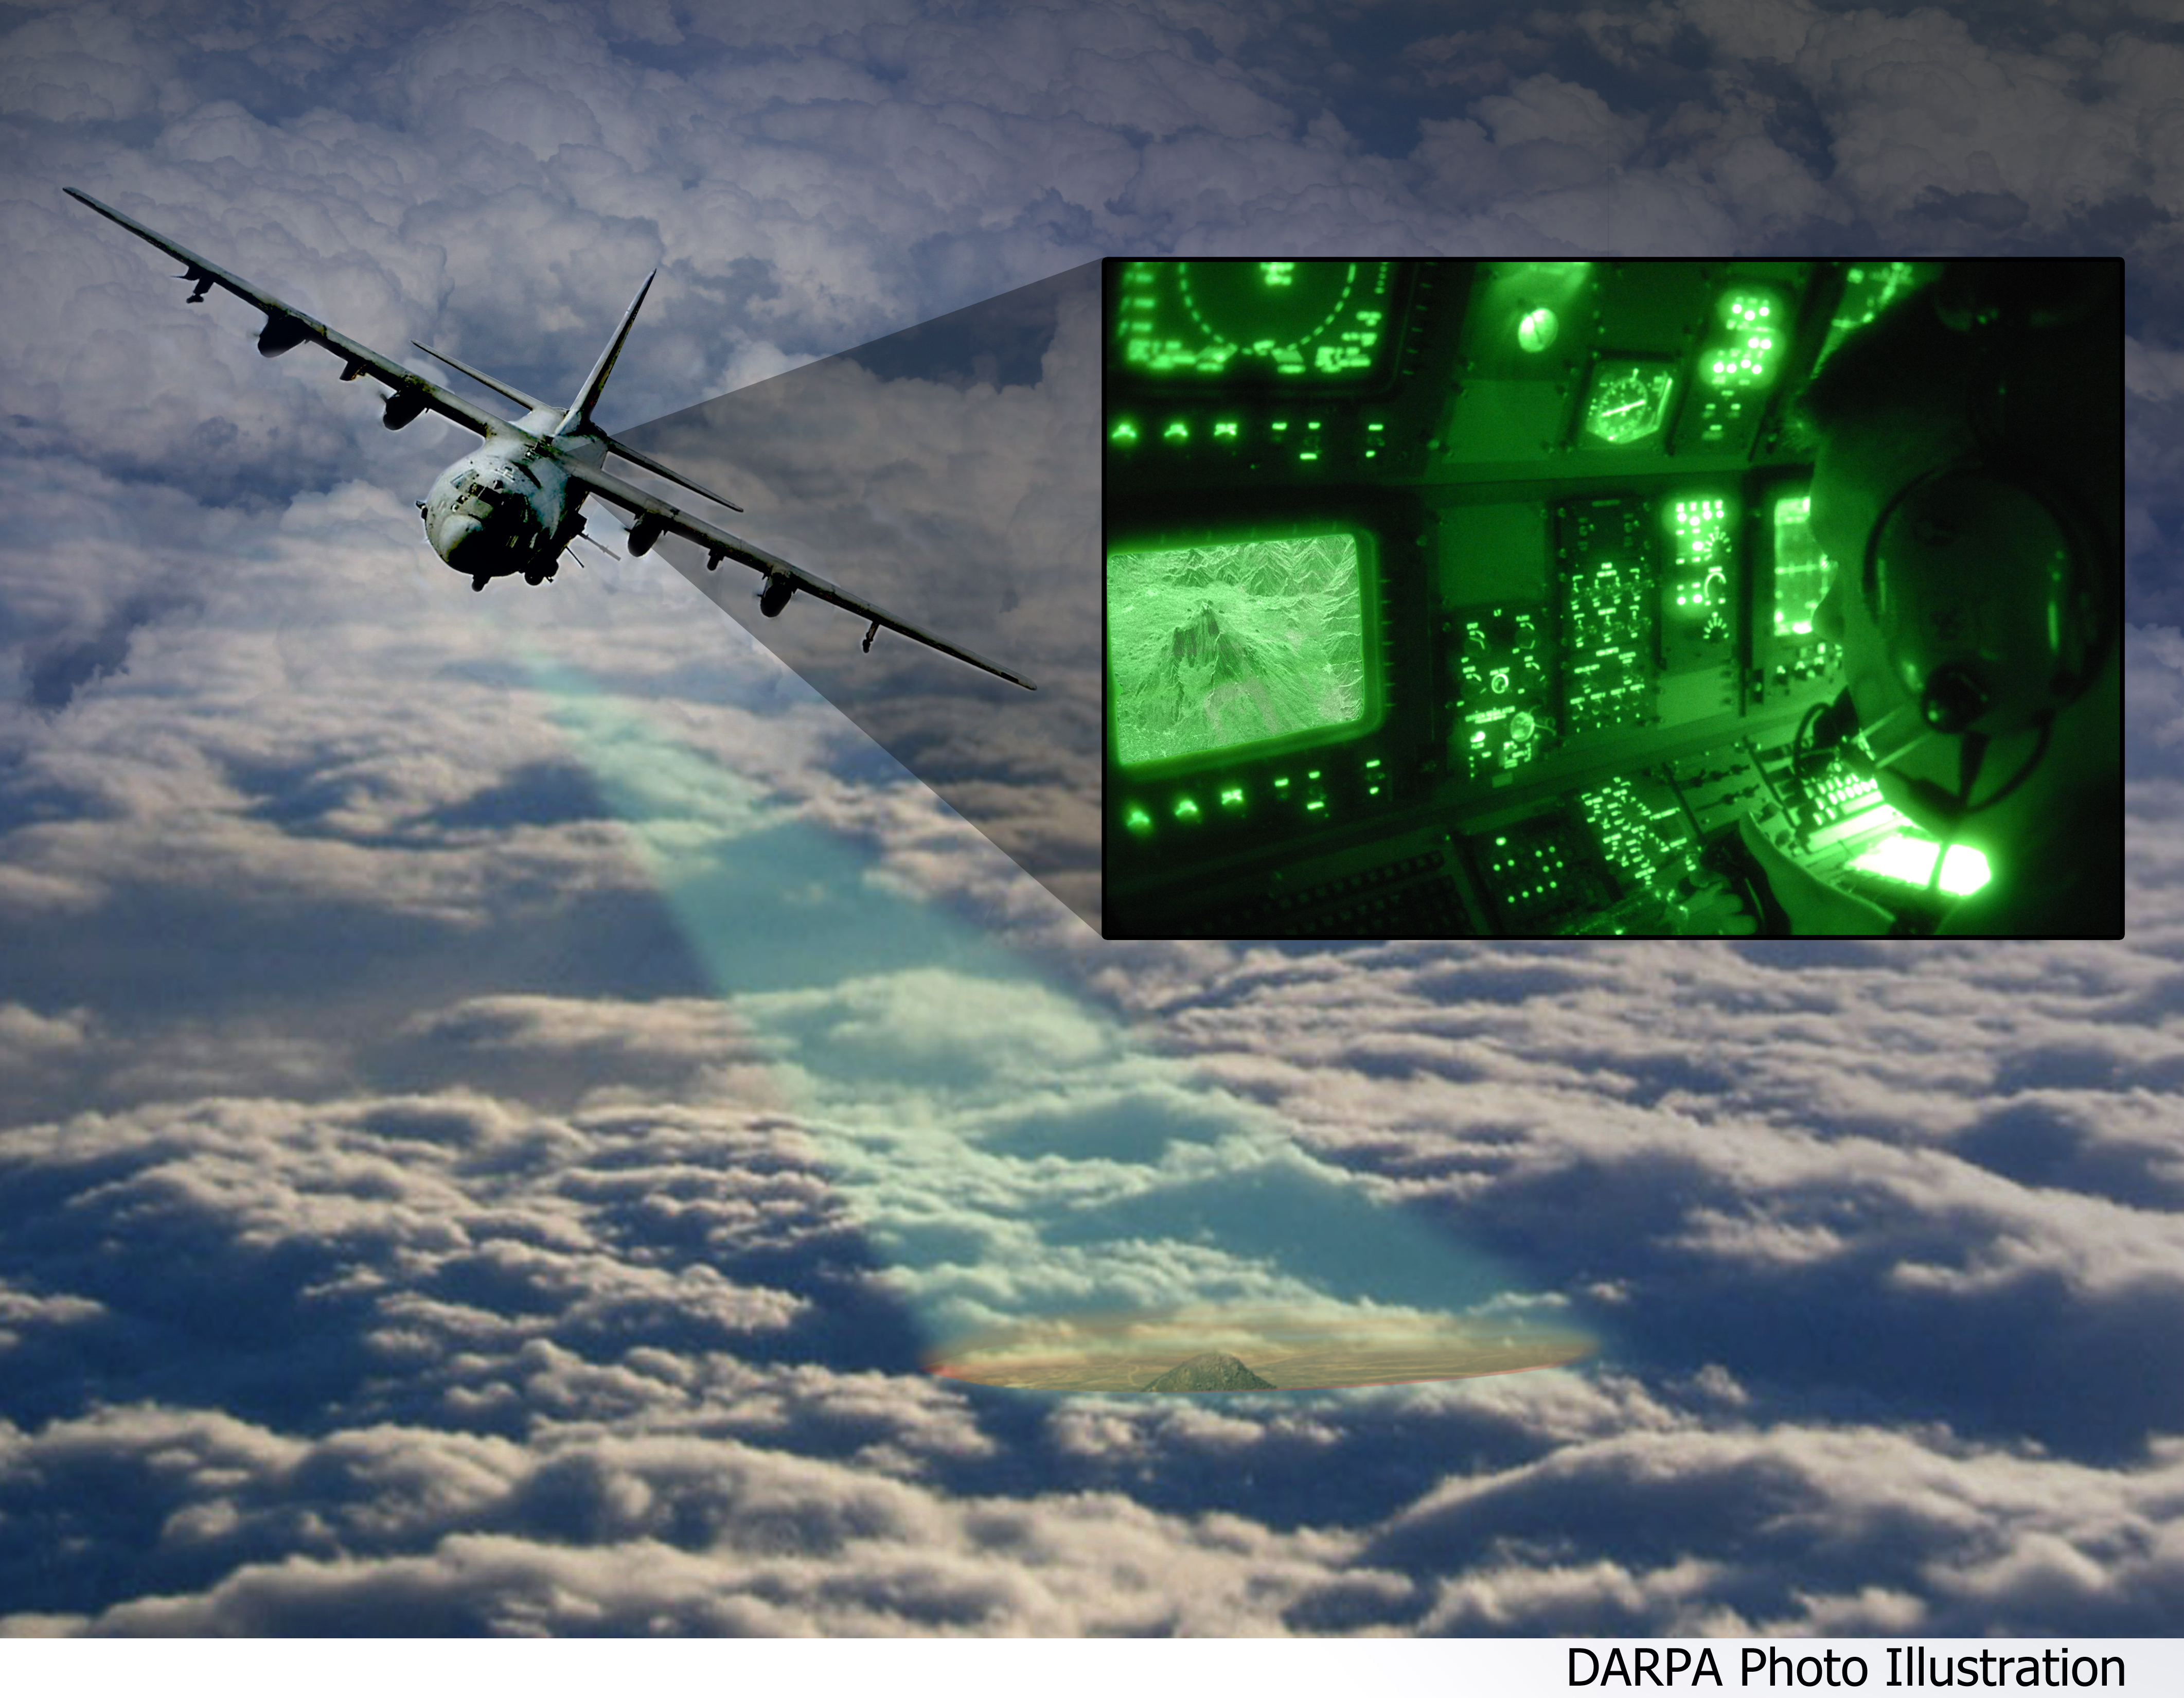 DARPA goes to market for ViSAR technology